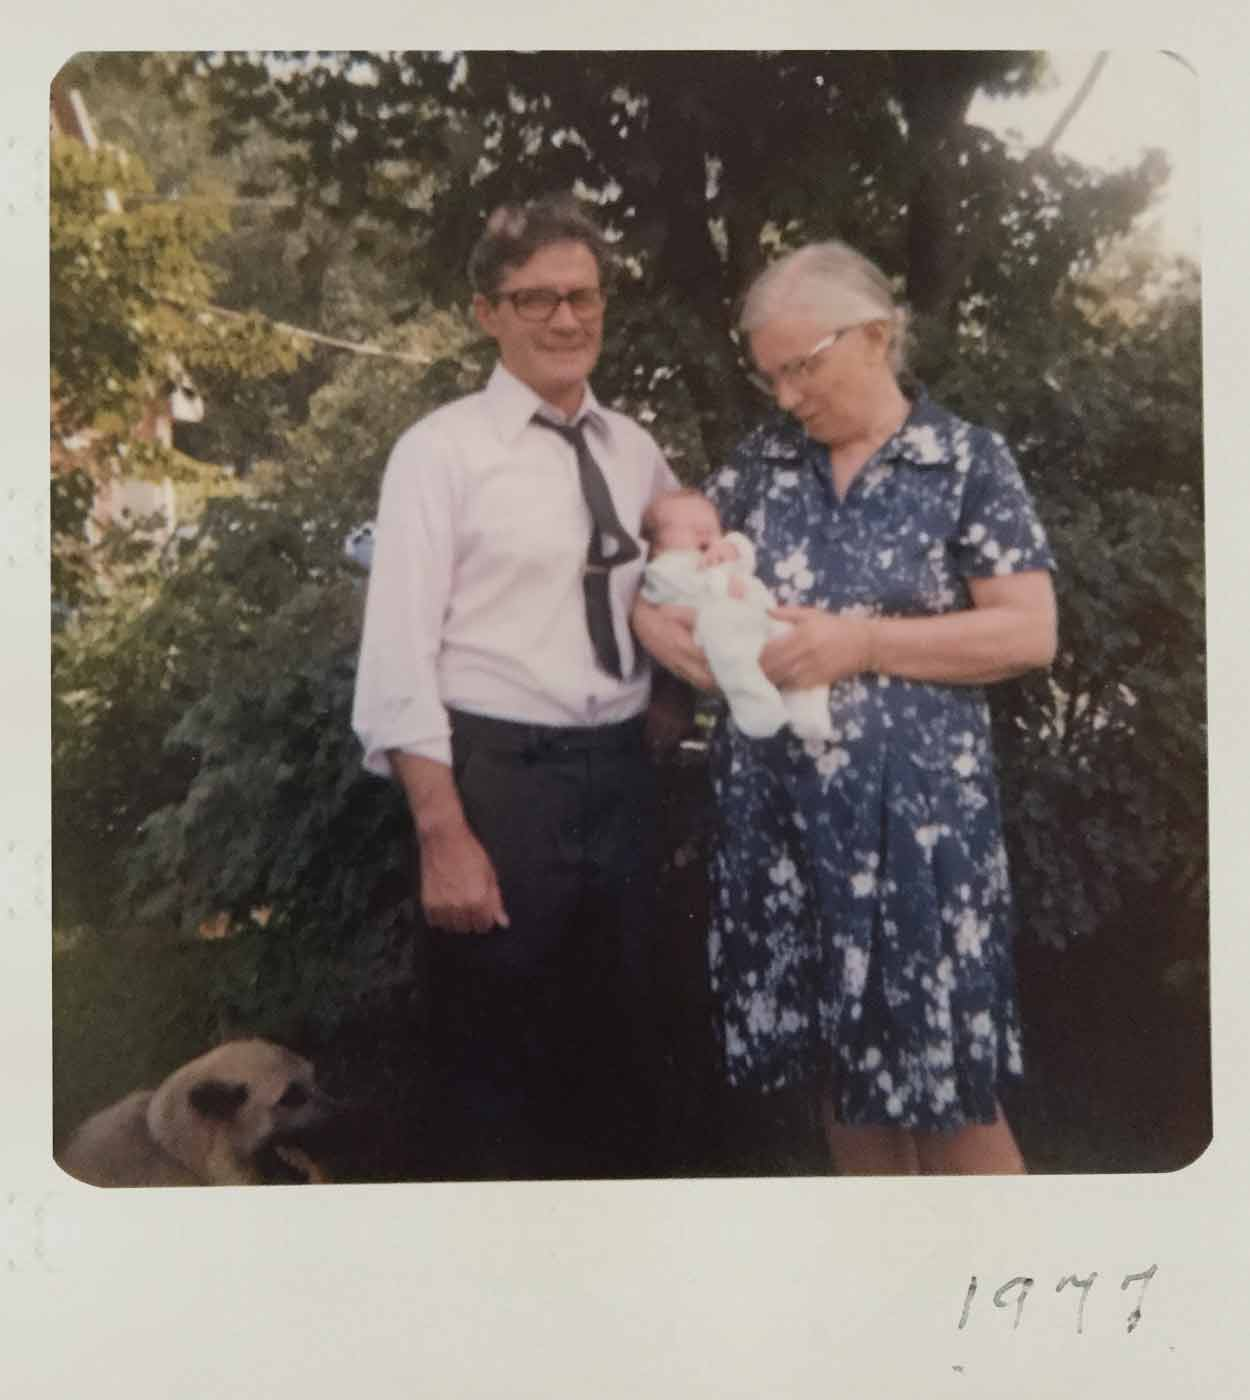 A photo of me, my Grandma, my Grandpa, and their dog, a German Shepherd. I'm the baby in my Grandma's arms.